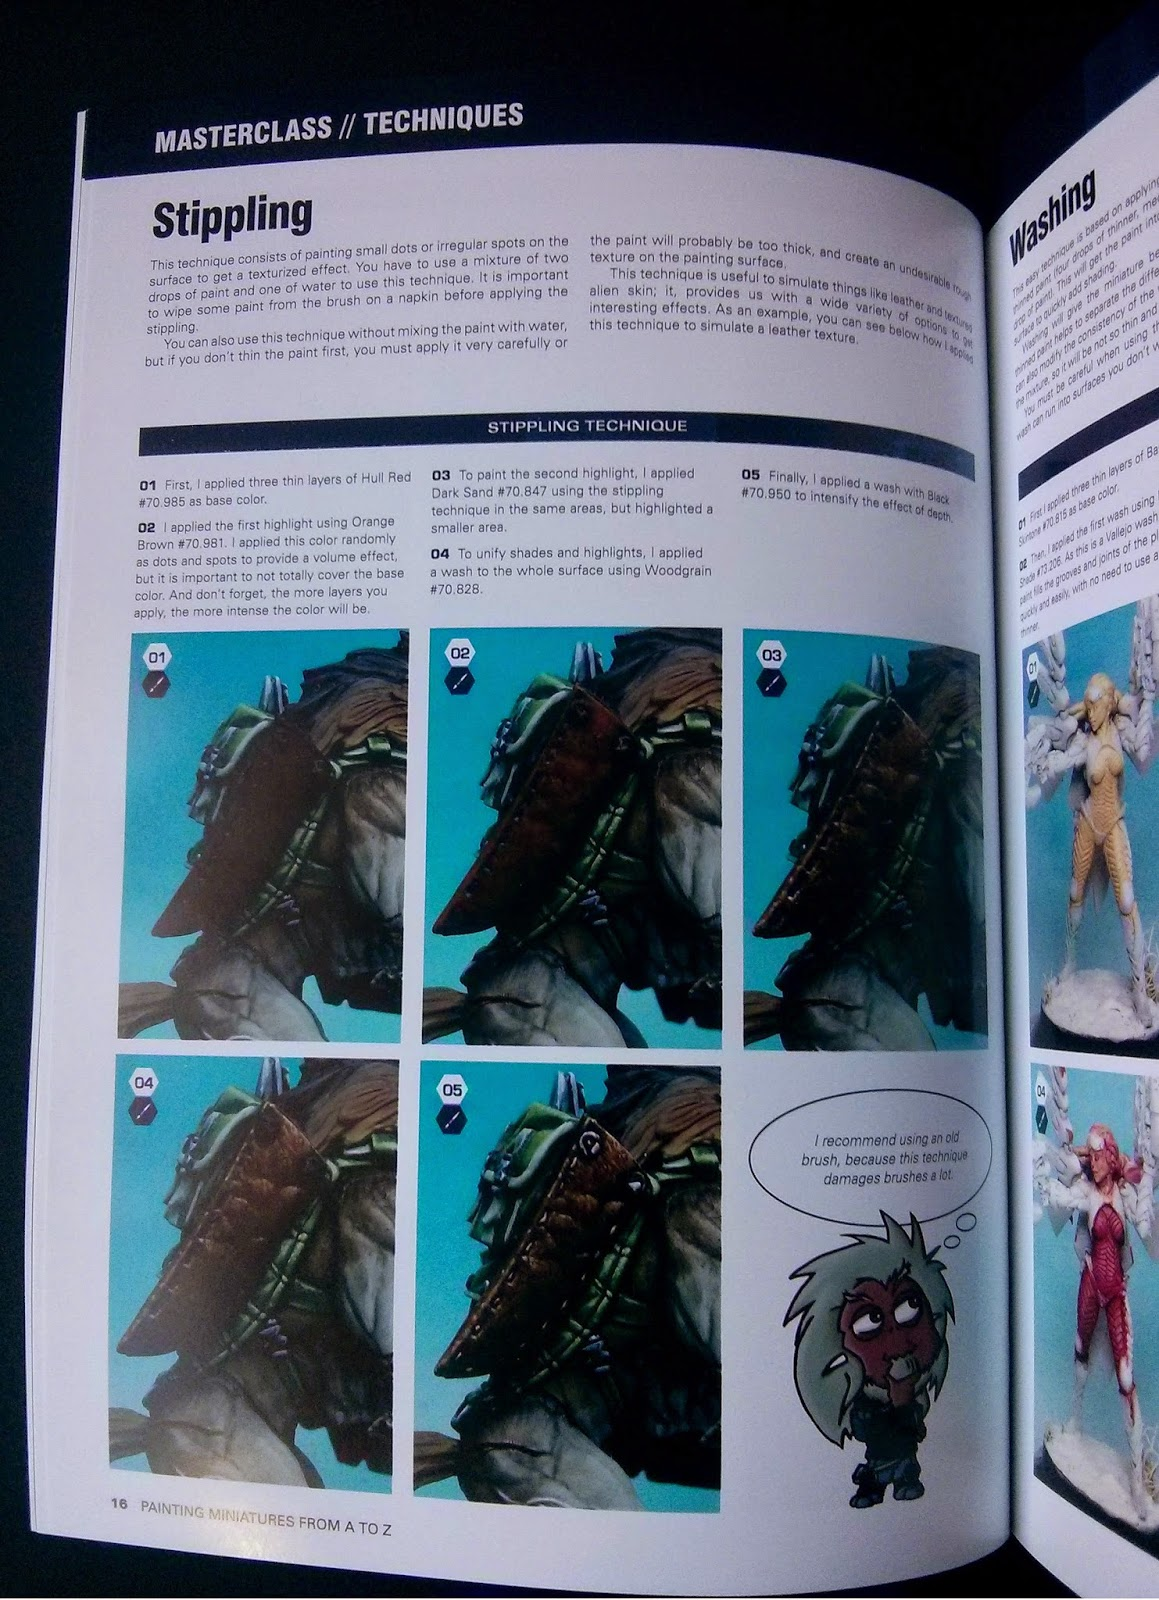 Painting miniatures from A to Z.